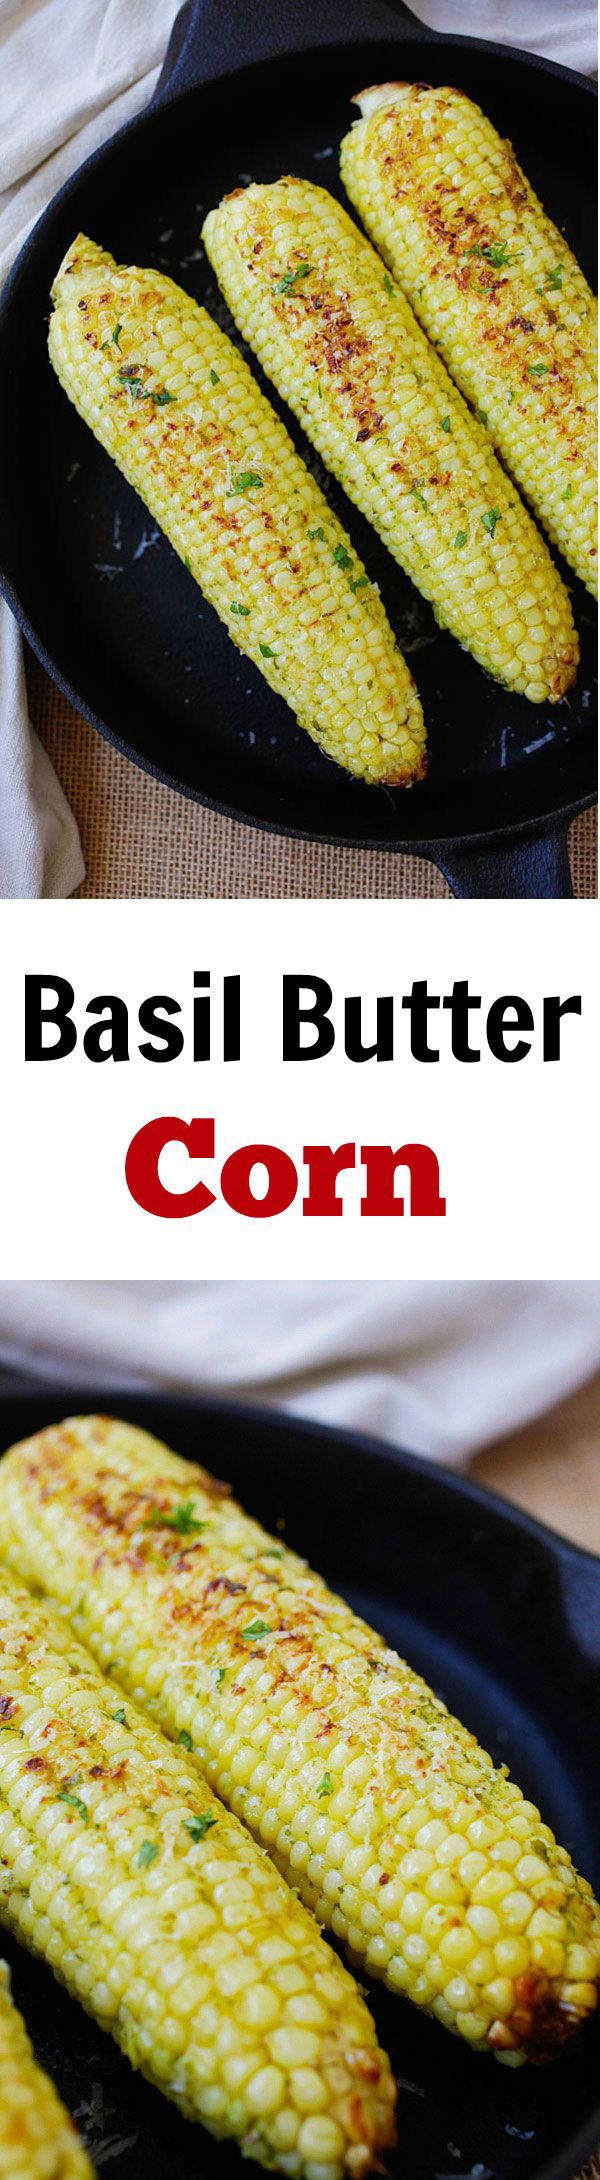 Basil Butter Corn – fresh corns with basil butter and topped with Parmesan cheese. Corns have never tasted SO good with this recipe | rasamalaysia.com